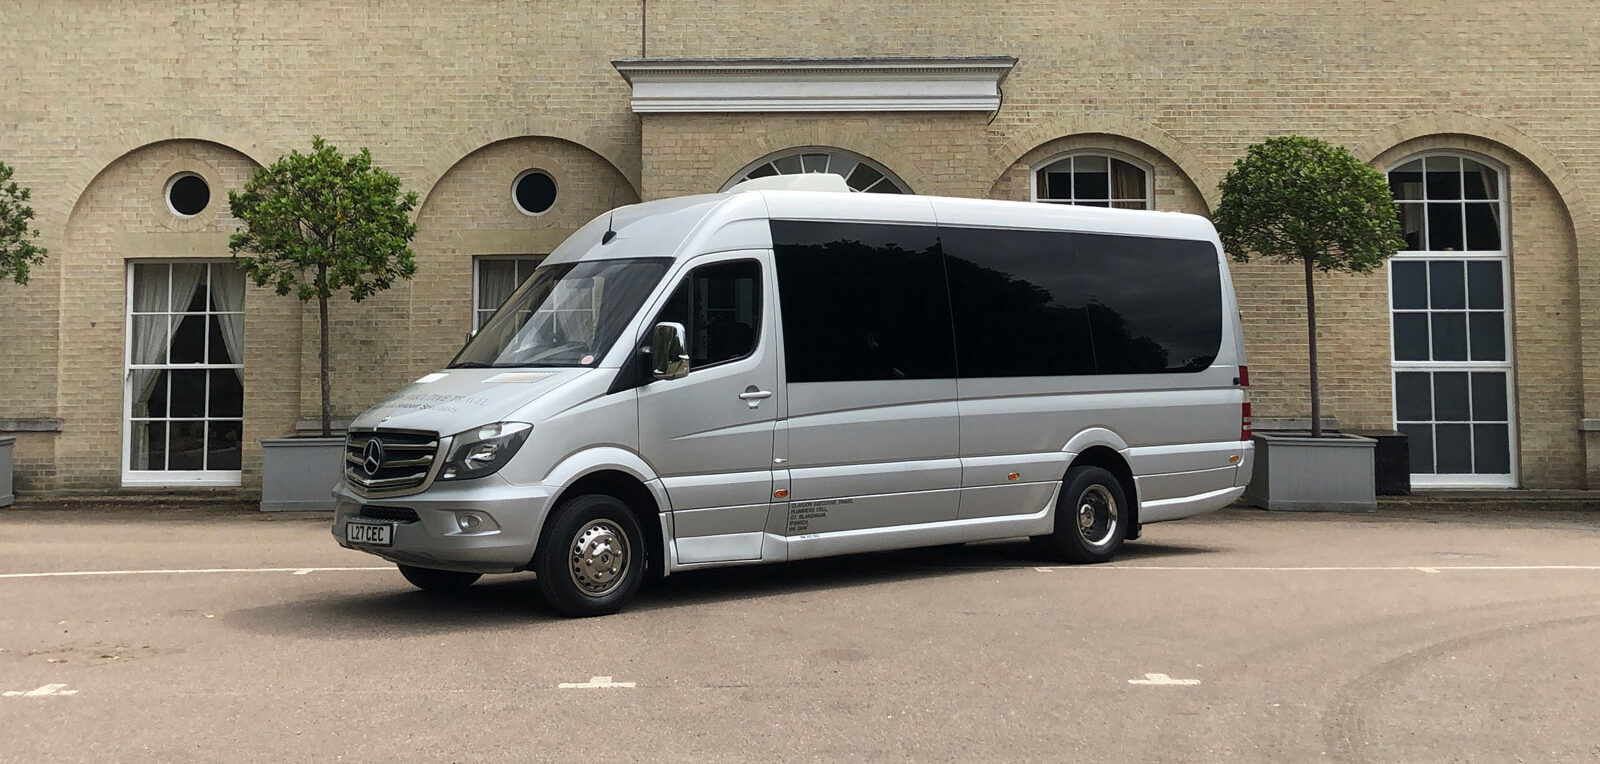 Claydon executive coach seen from the side